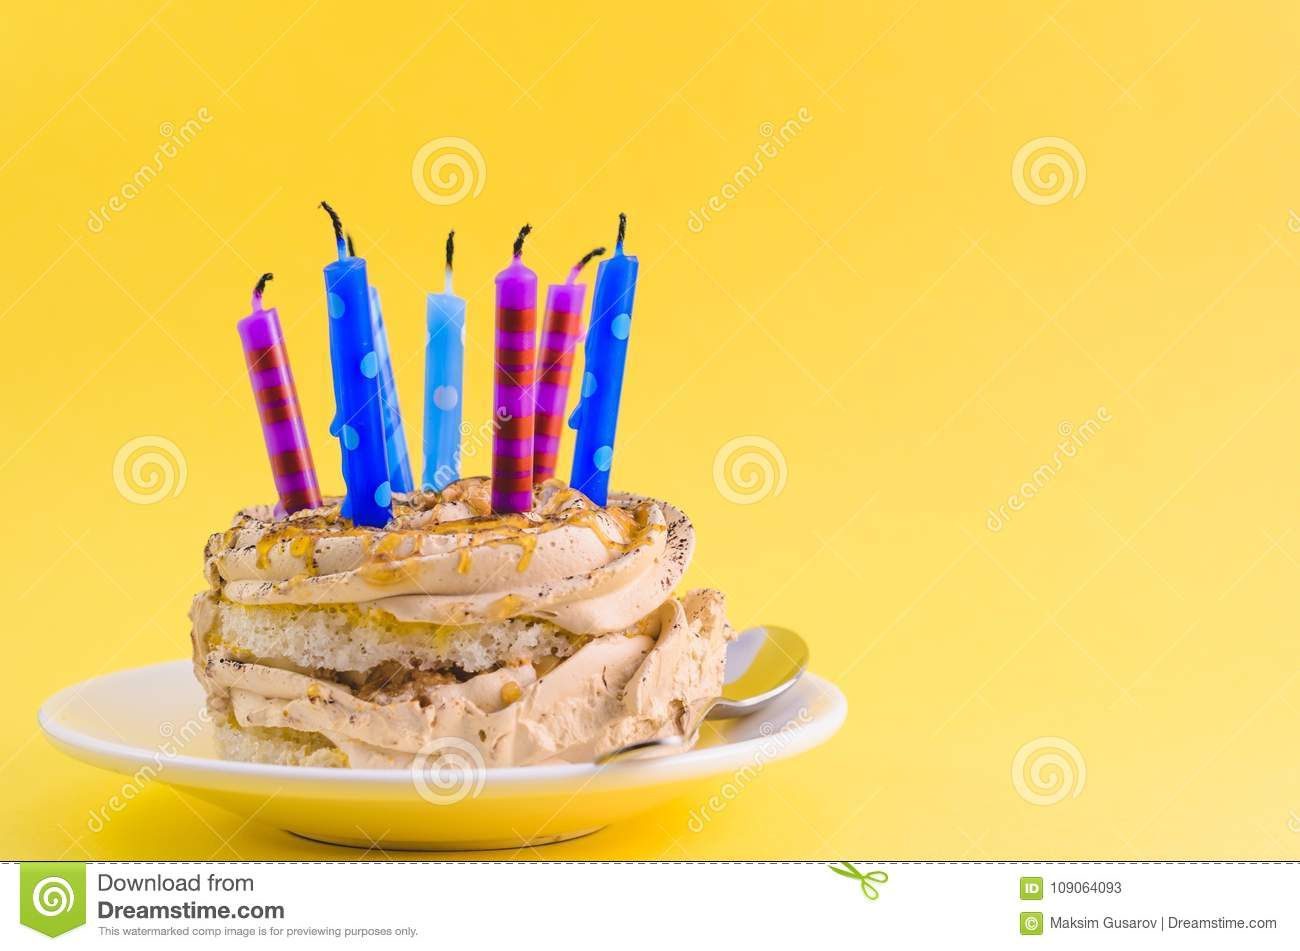 Birthday Cake With Lots Of Candles Chocolate Cake With Cream And Lots Of Candles On A Yellow Background